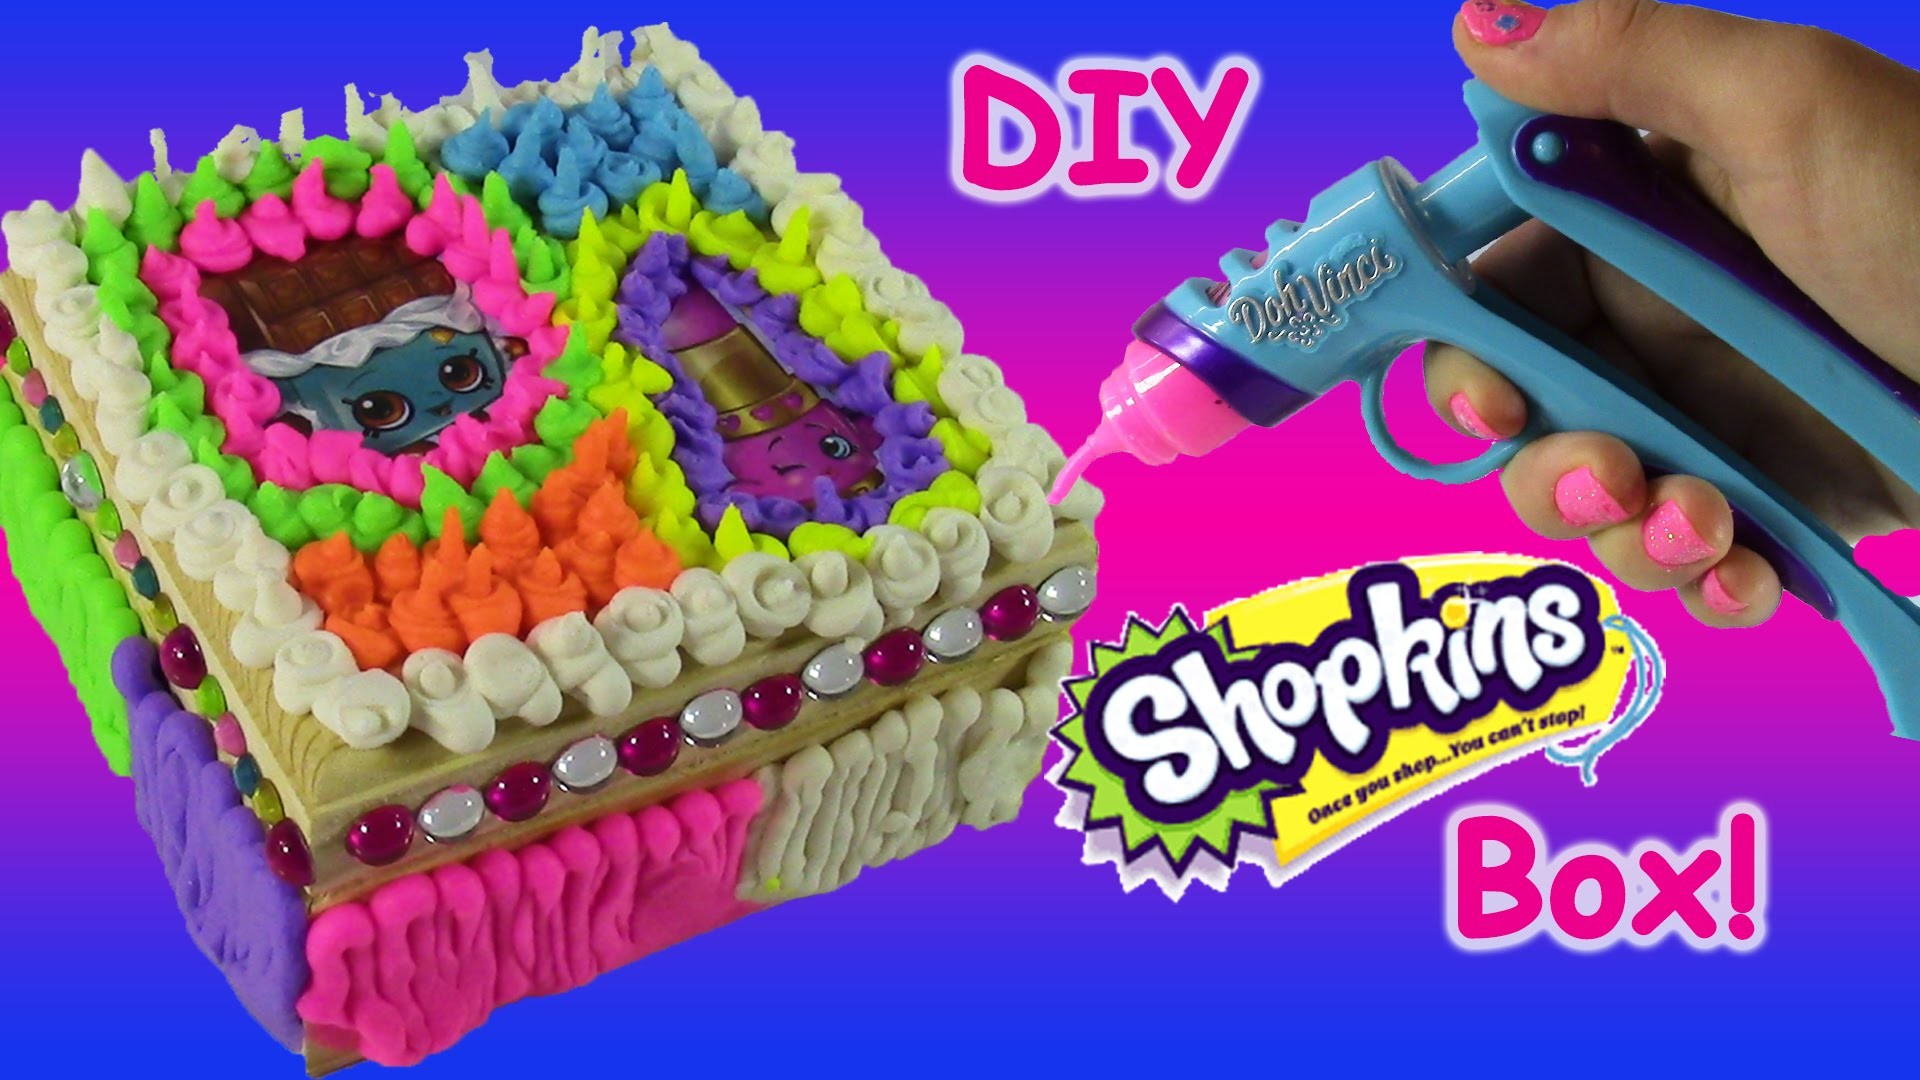 Make Your Own Shopkins Box with DohVinci! DIY SHopkins Keepsake! Lippy Lips FUN Surprises